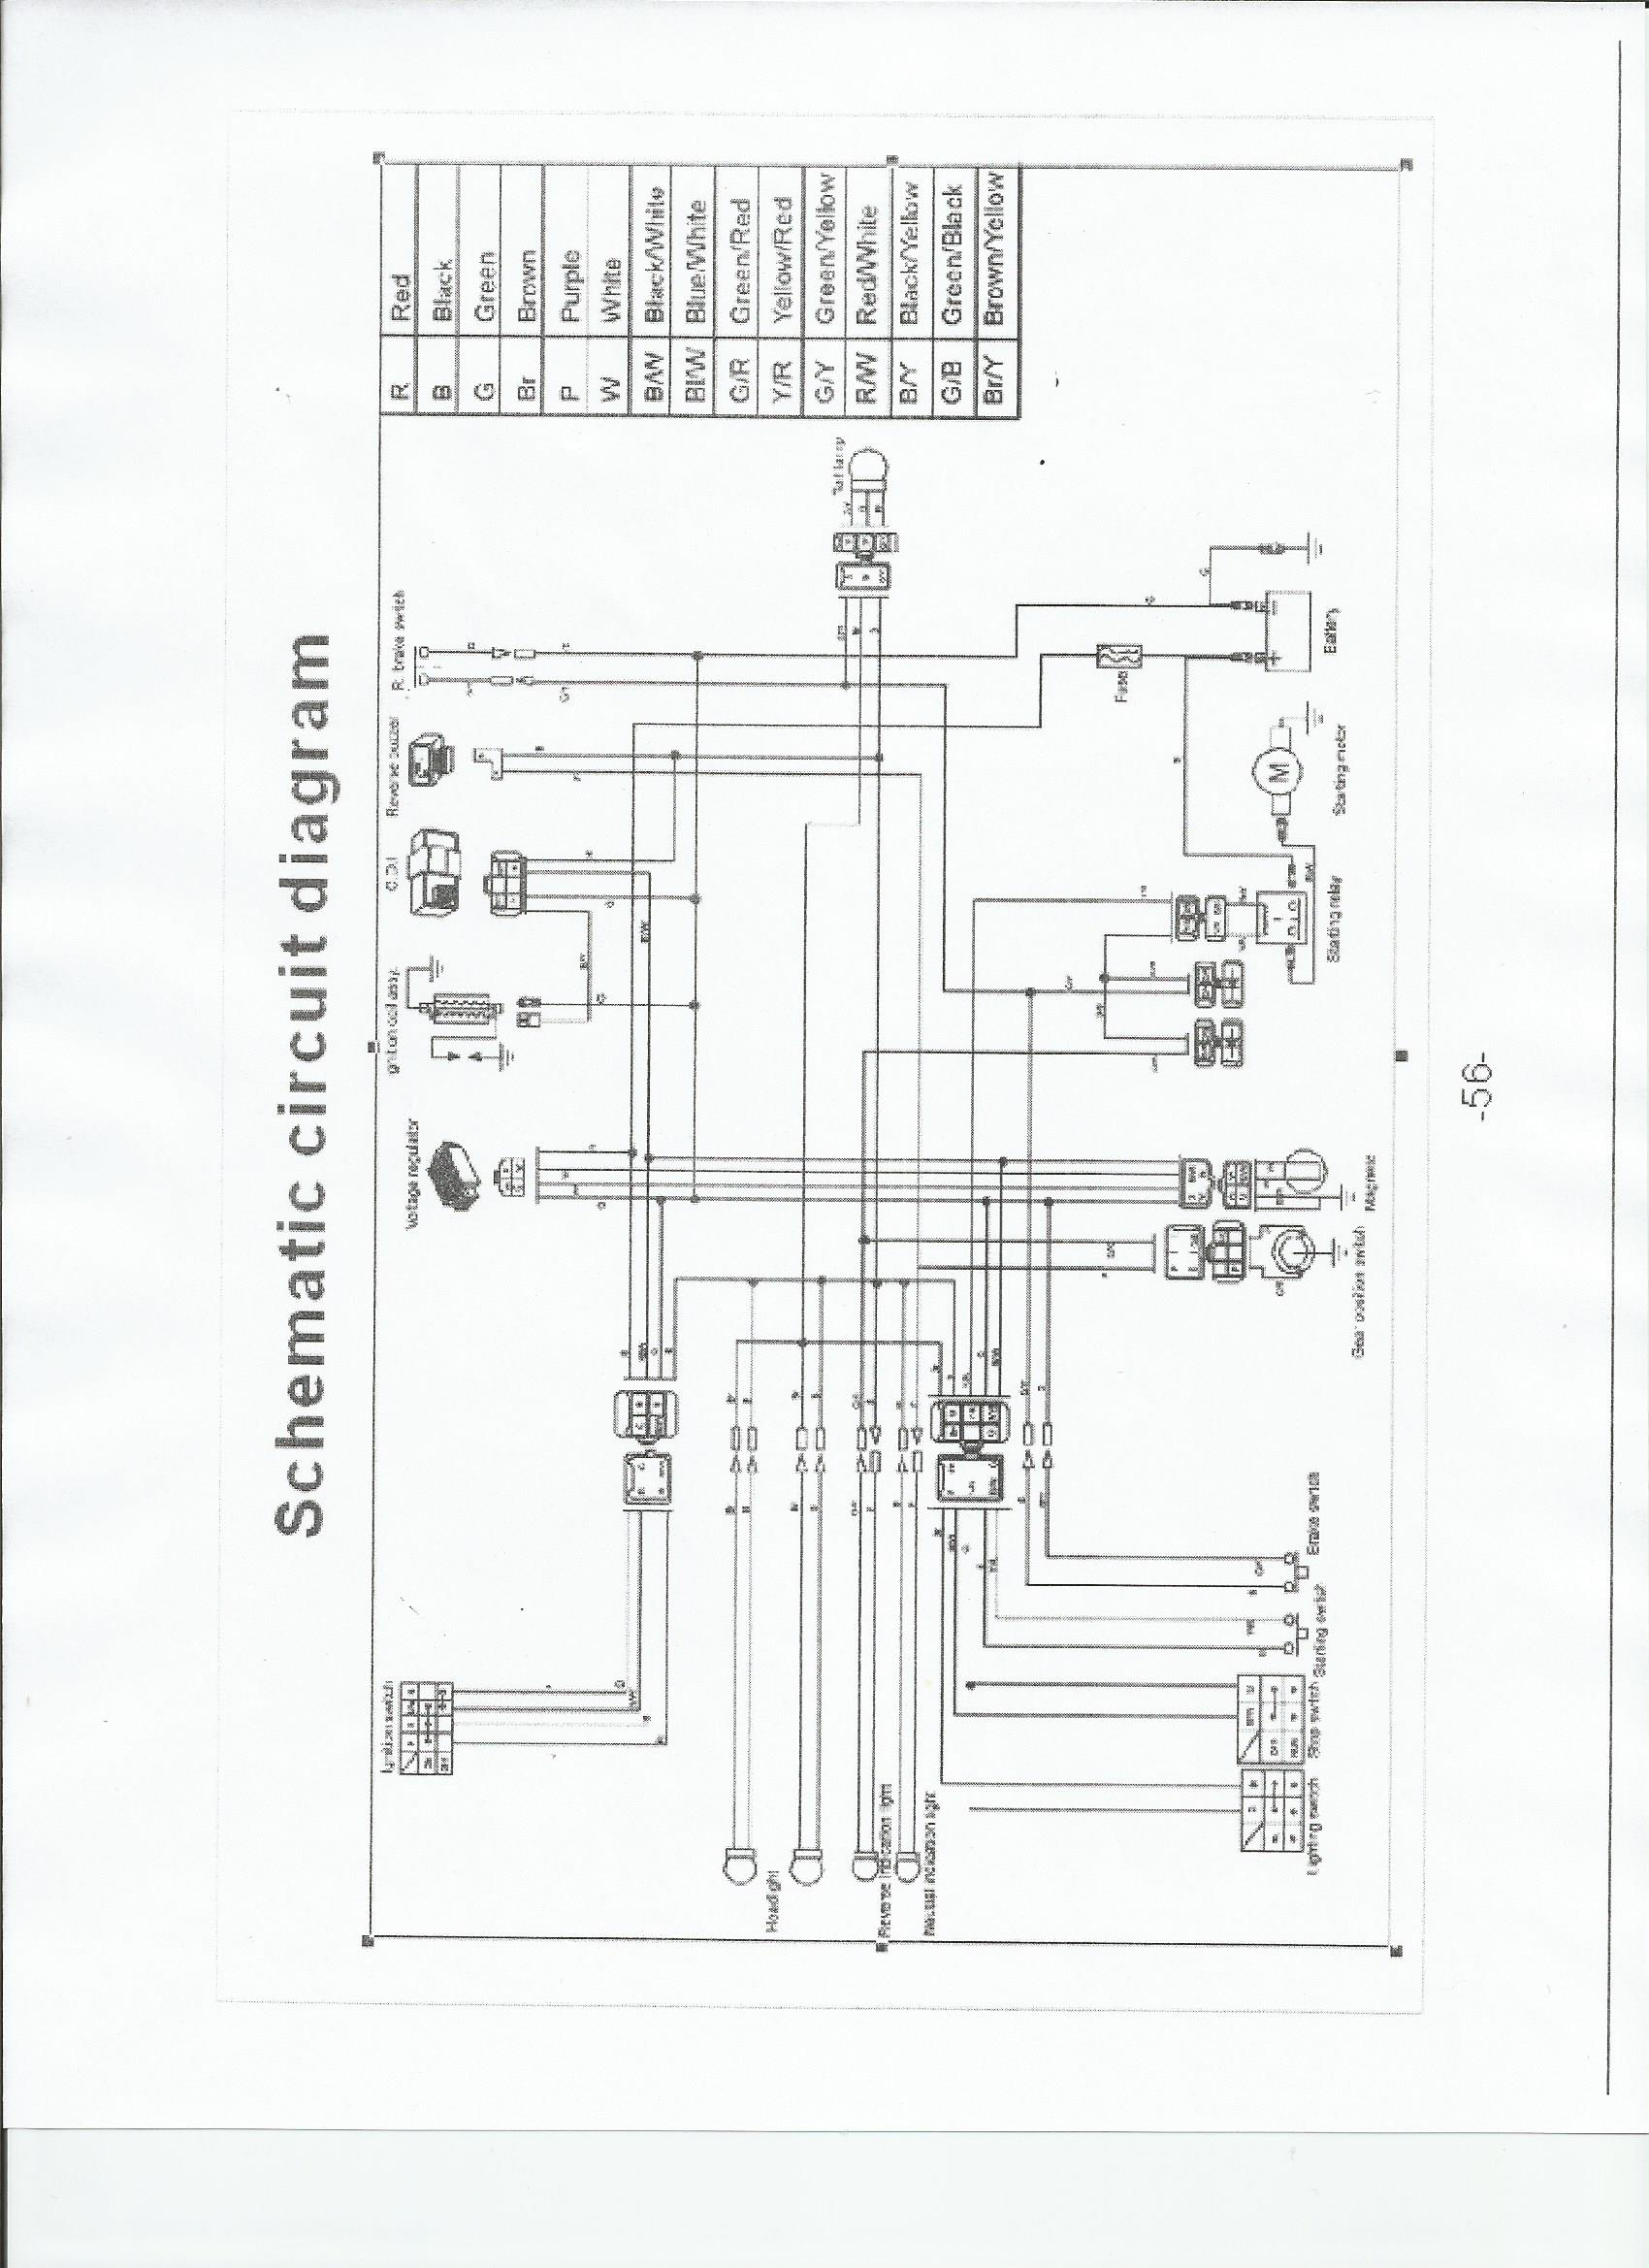 Wiring Diagram For Palomino Rv Electrical Wiring For RV